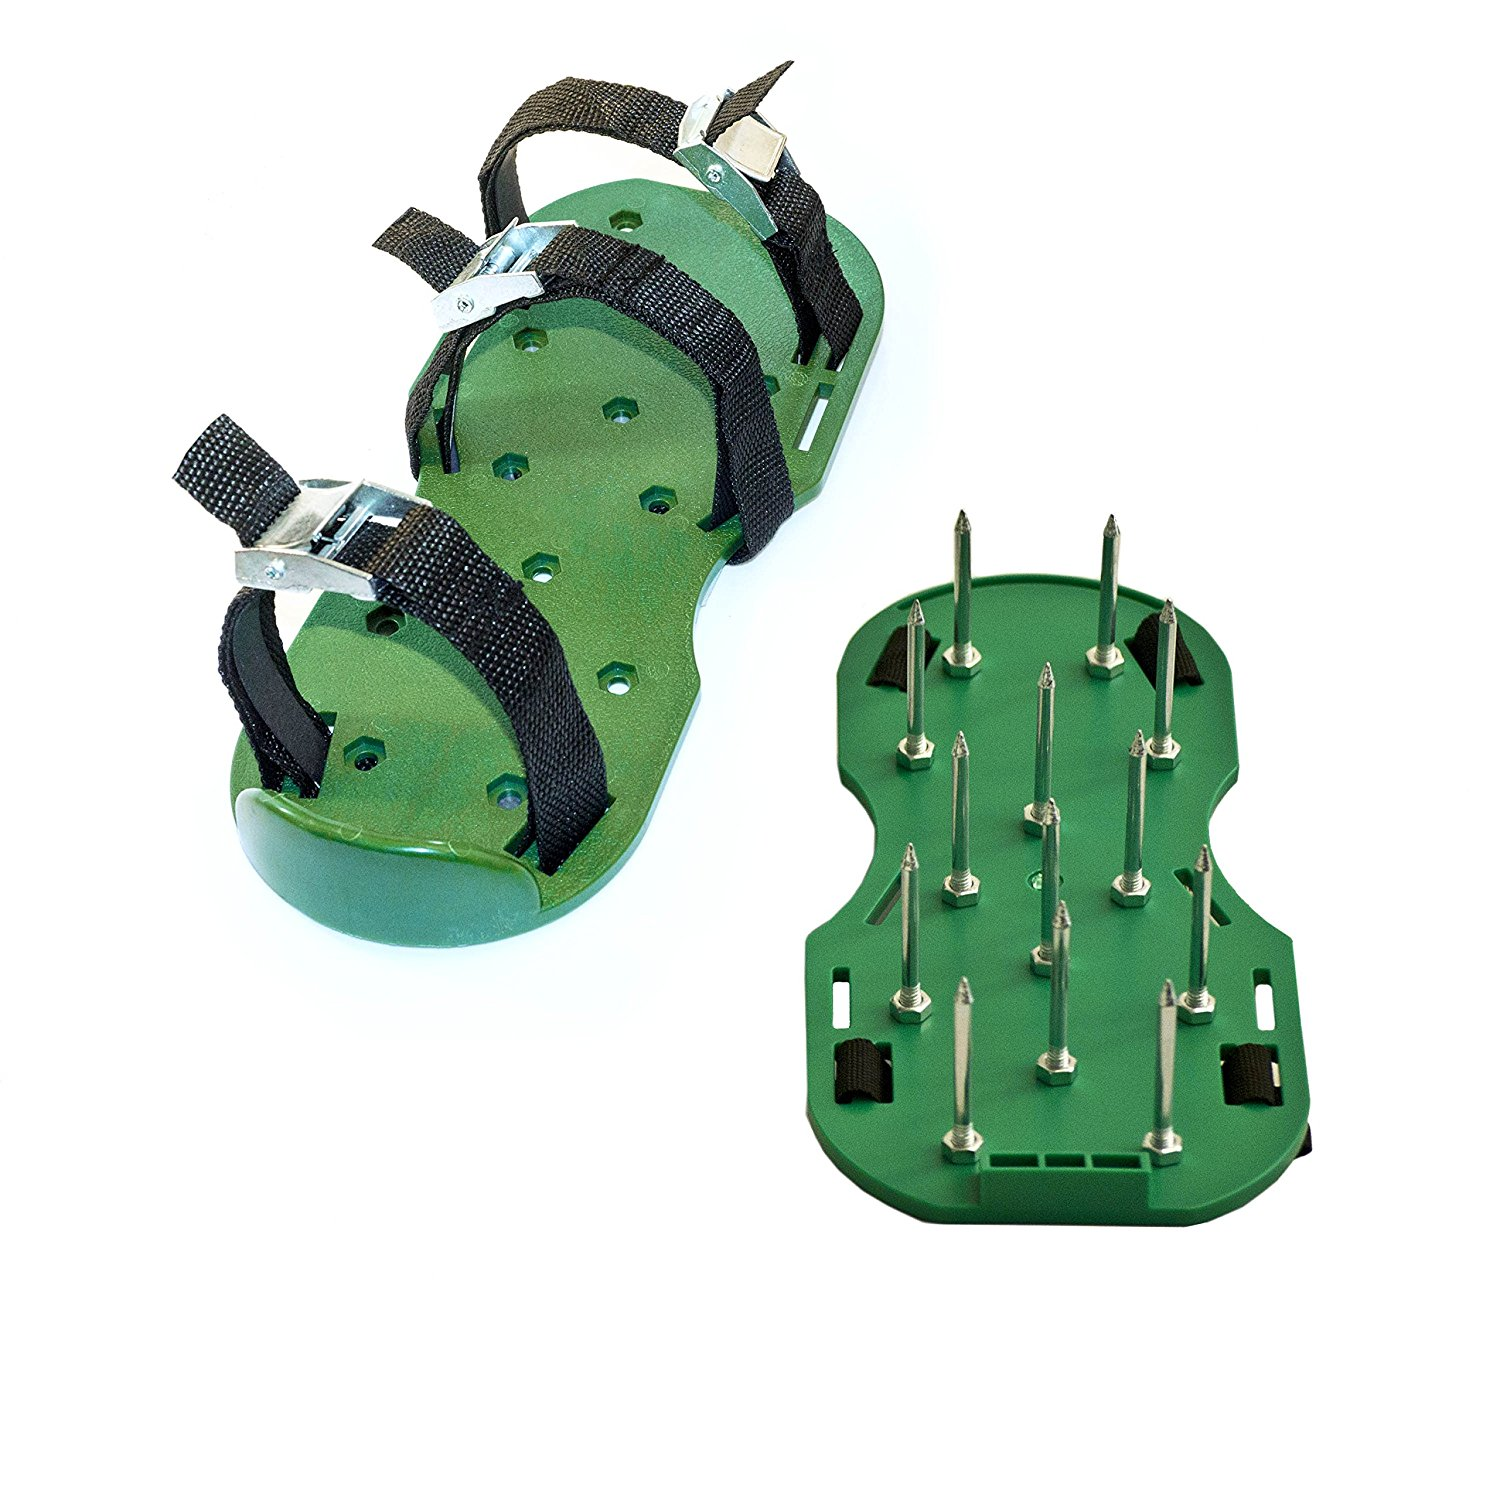 Lawn Garden Sharp Aerating Spike Shoes, Green Color